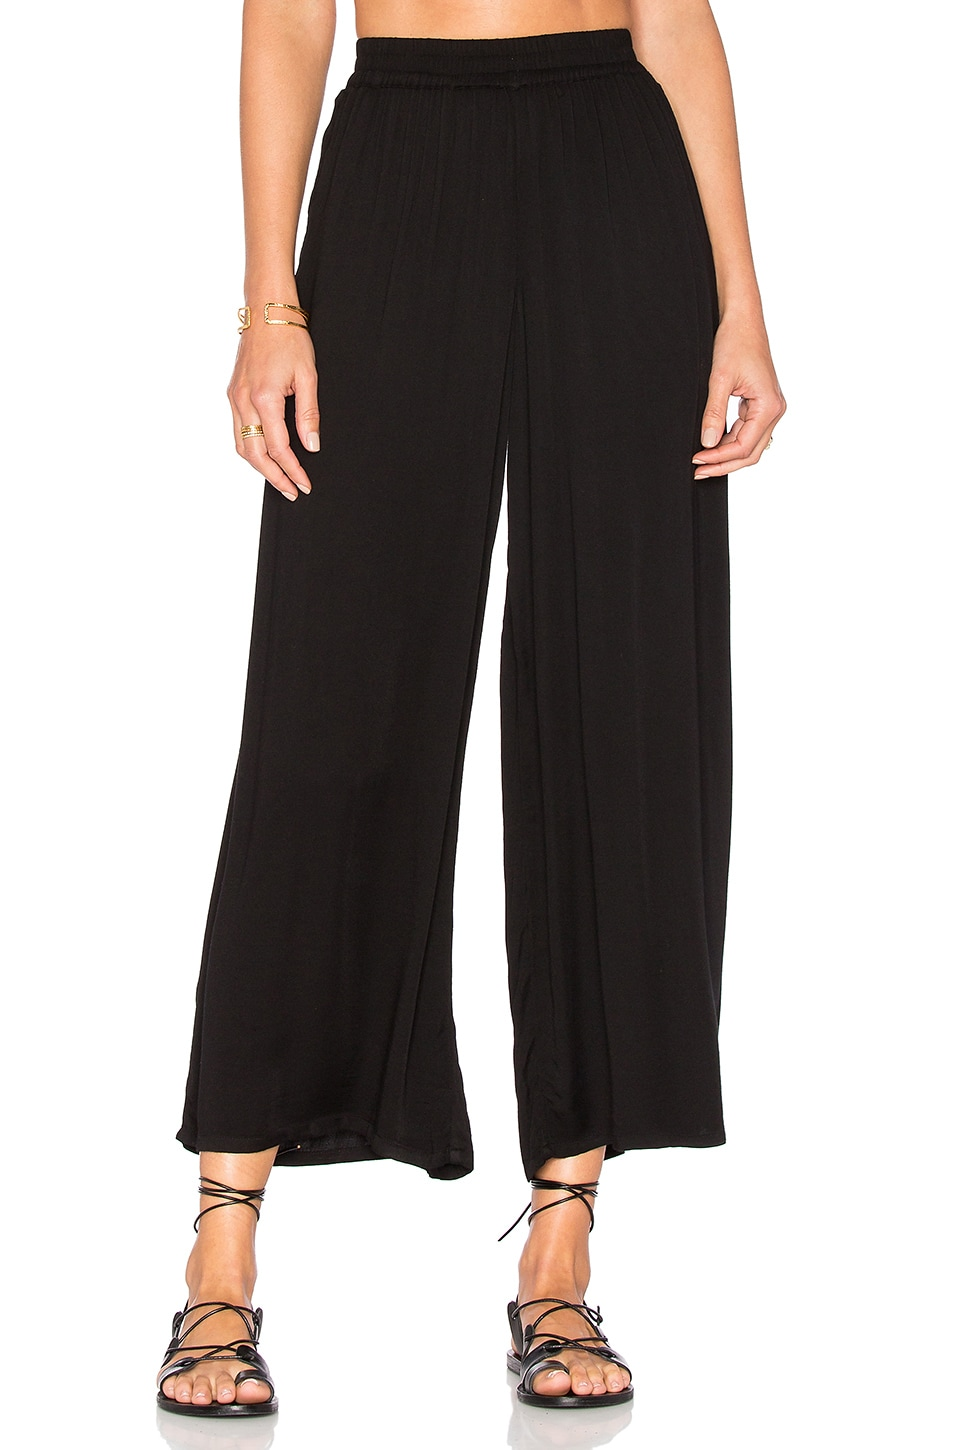 Dessa Pant by Young, Fabulous & Broke